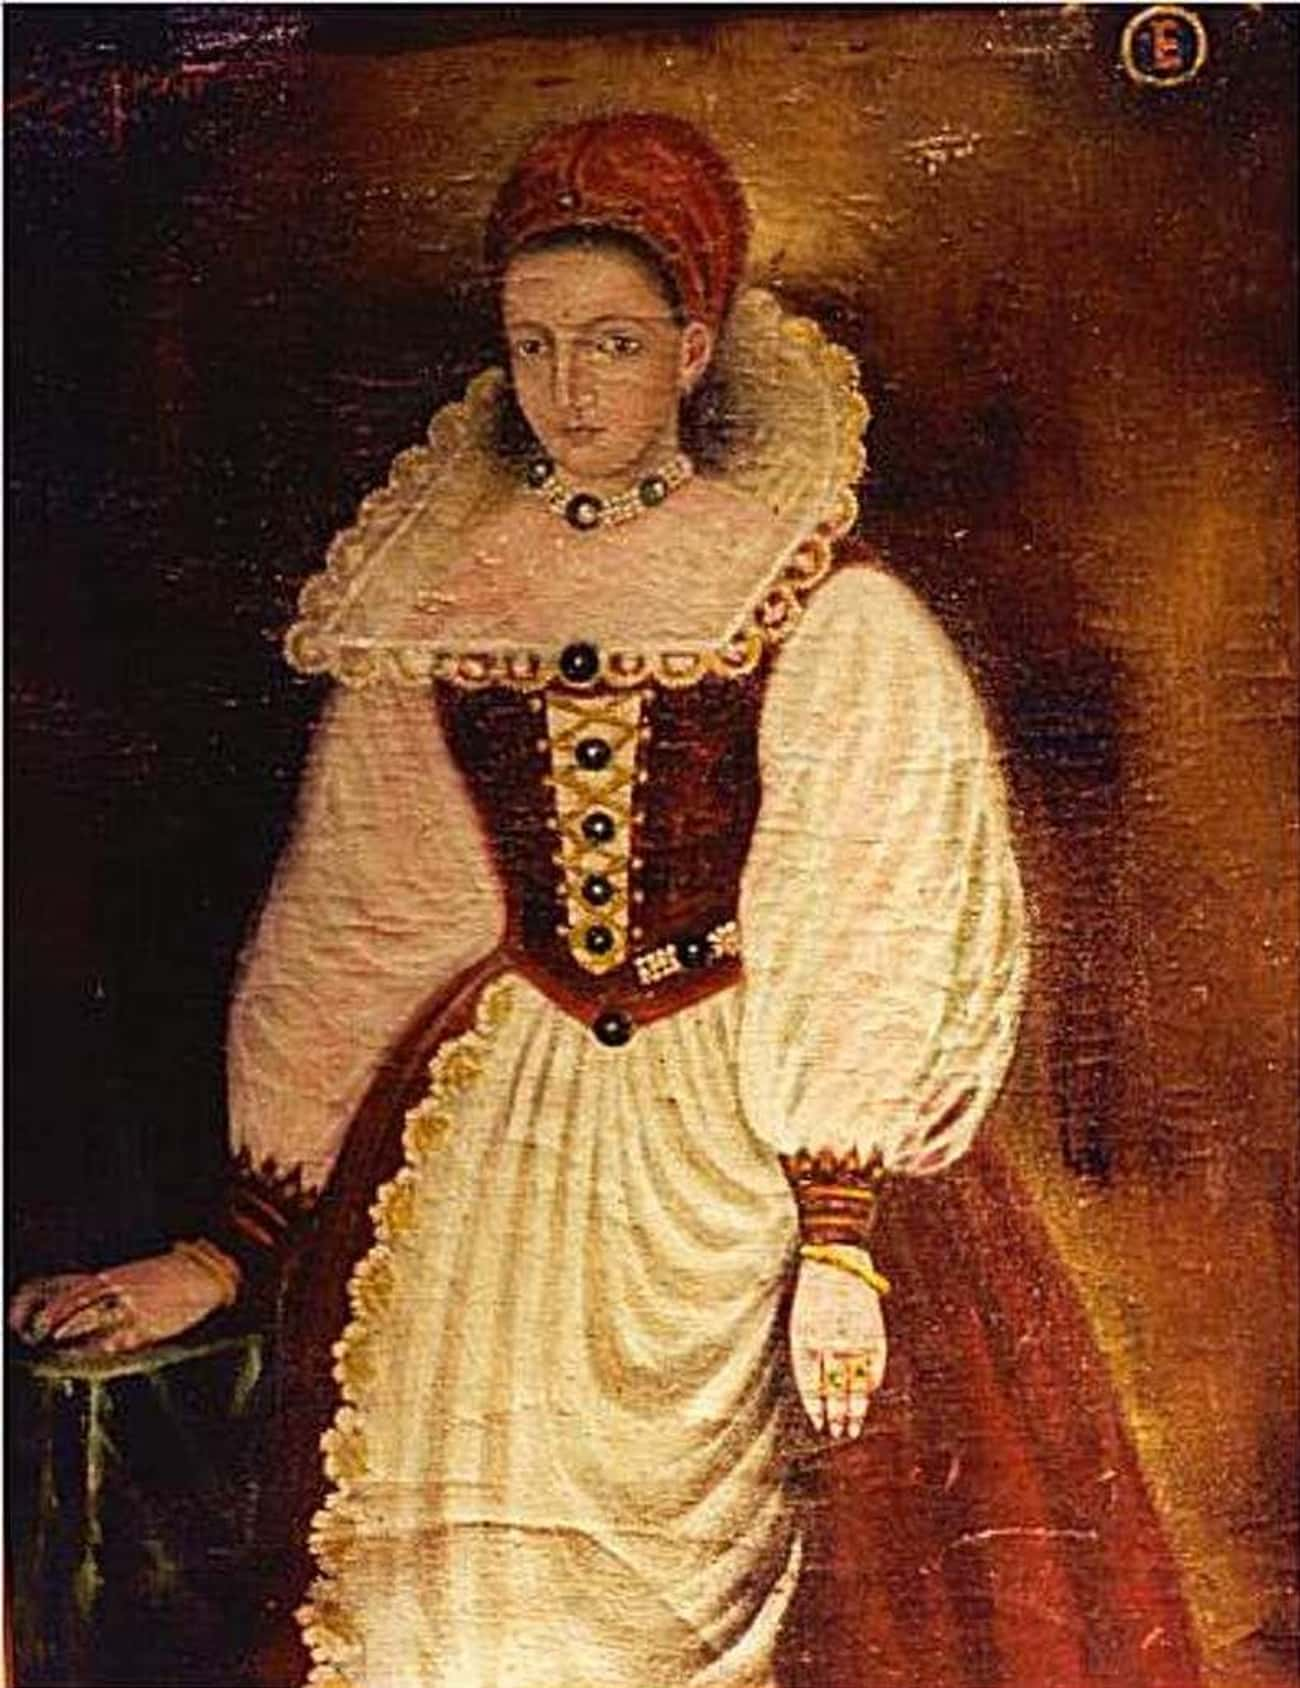 She Supposedly Bathed In Virgi is listed (or ranked) 4 on the list 15 Disturbing Facts About Elizabeth Bathory, History's Most Murderous Woman